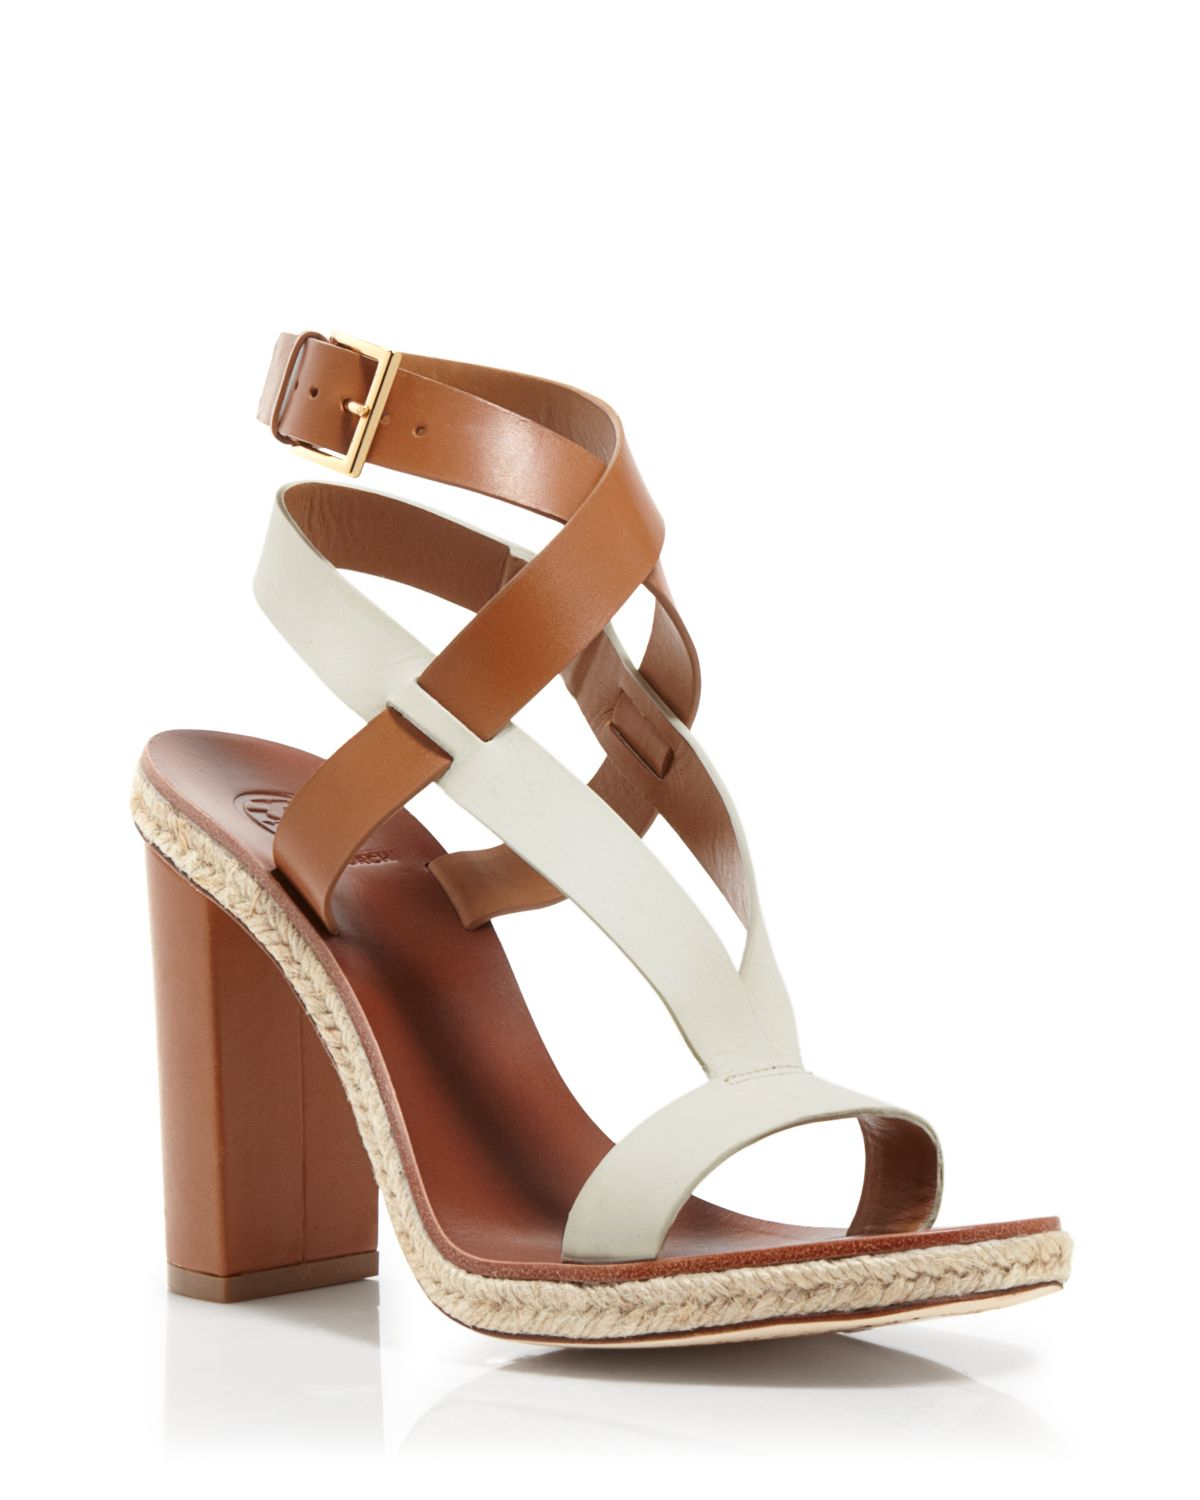 5dc0c902d717c Lyst - Tory Burch Two Tone Strappy Sandals - Marbella High Heel in Brown